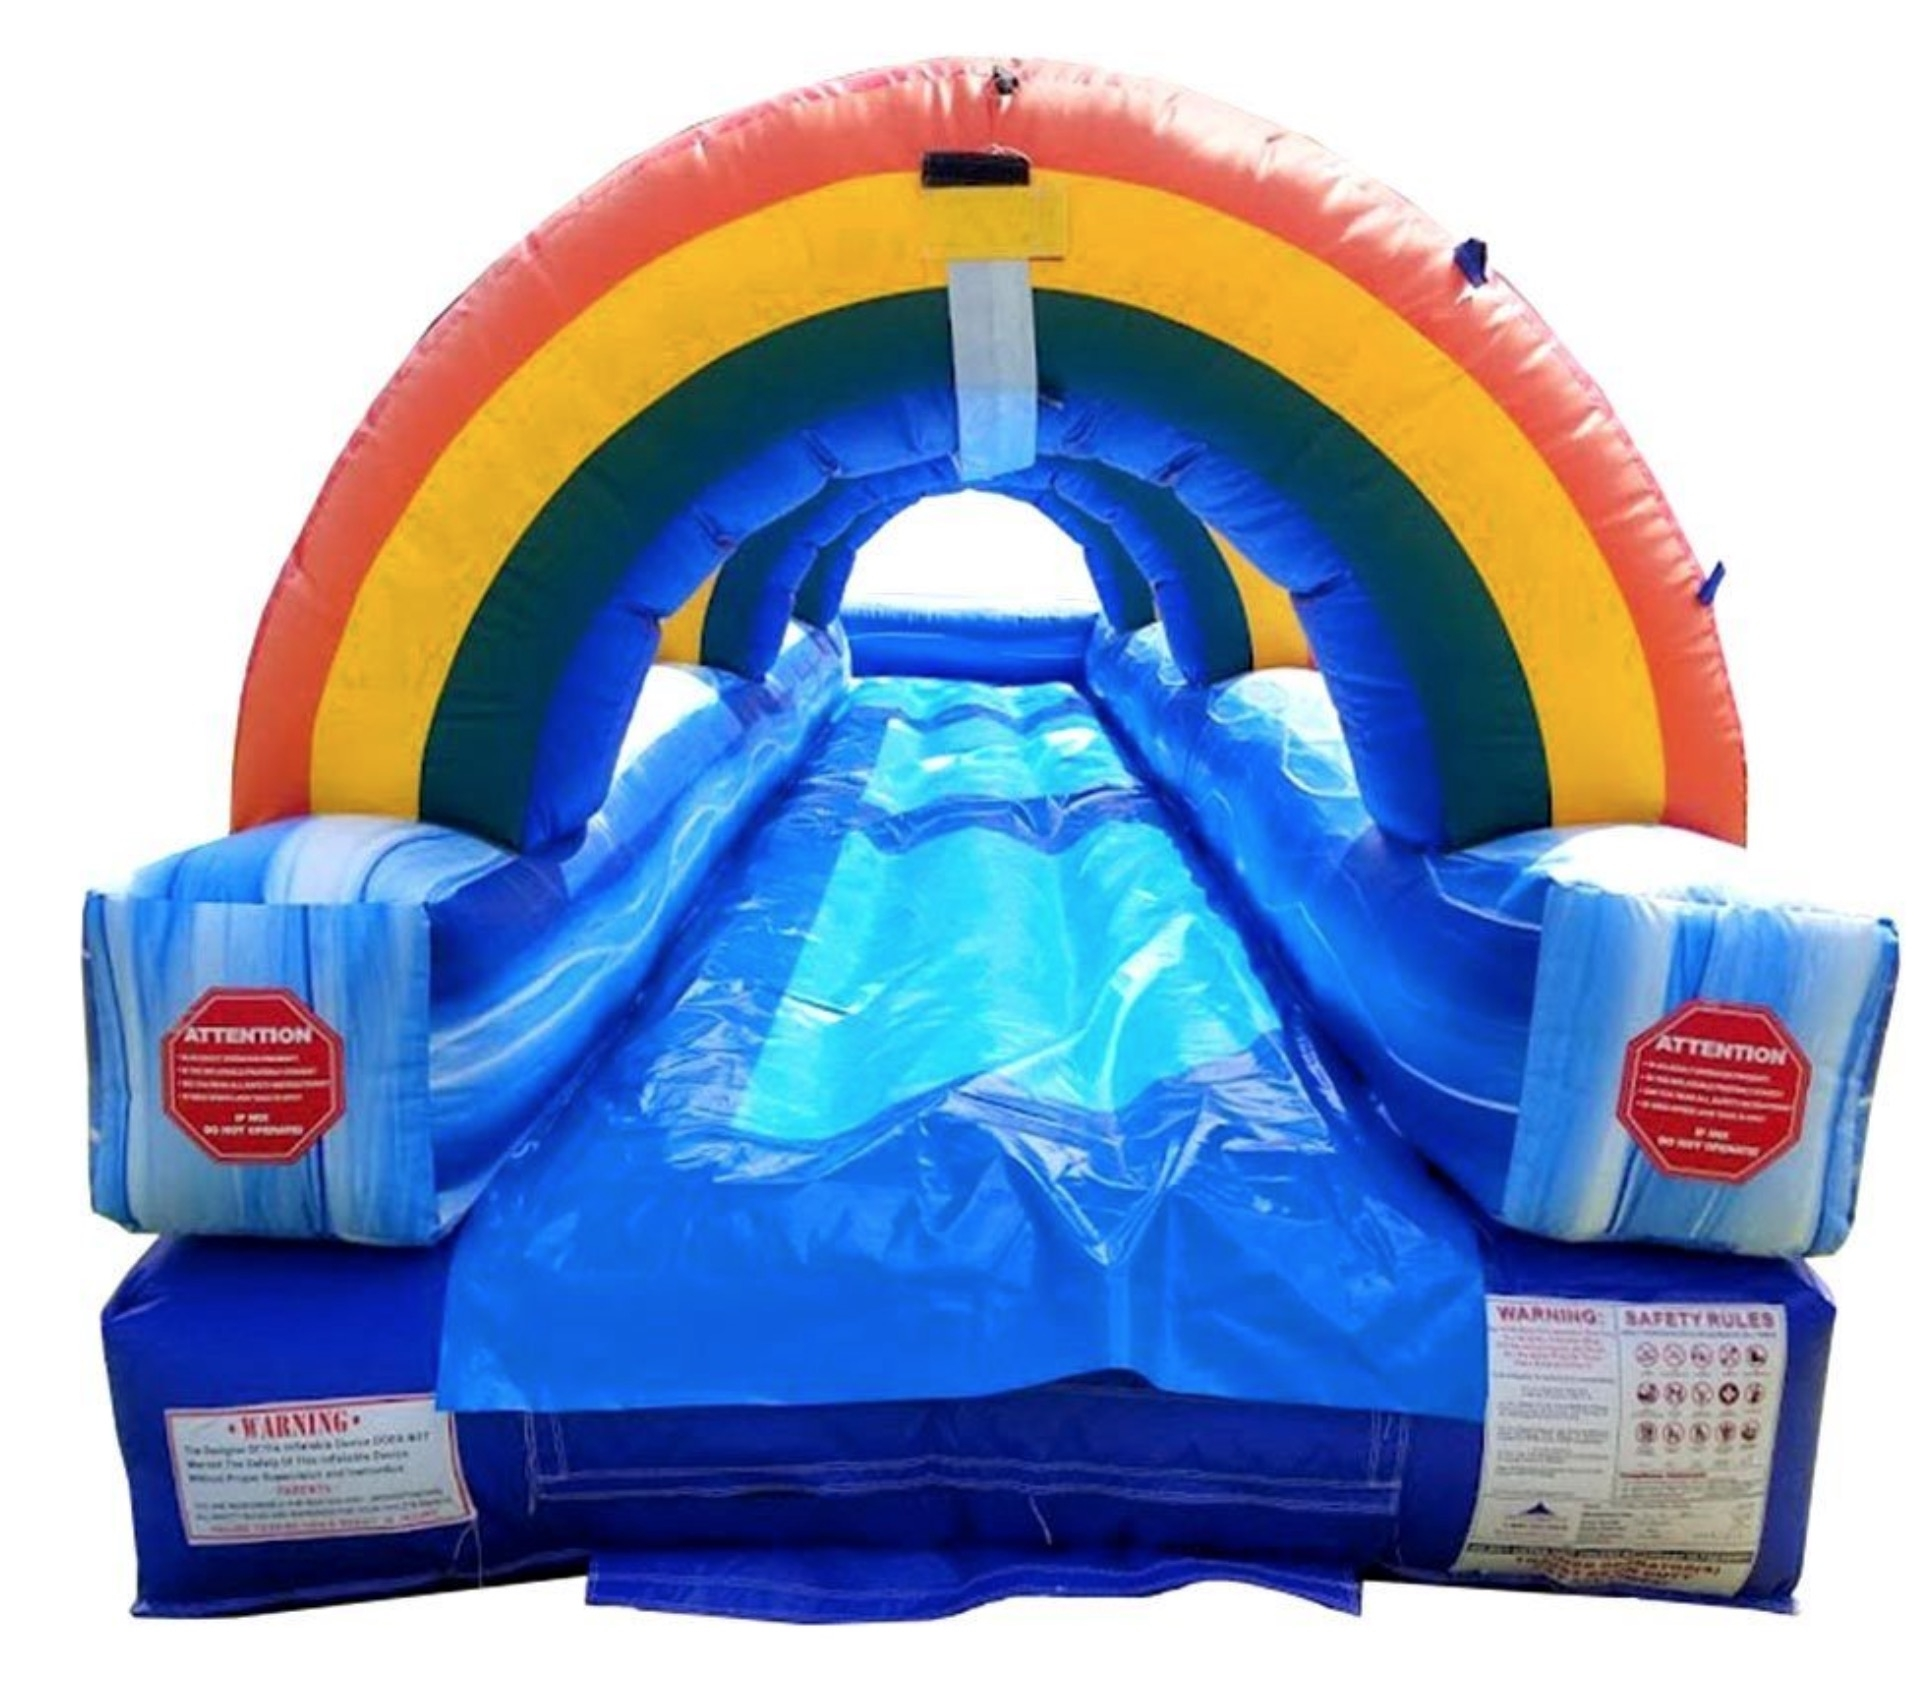 Rainbow Slip N Slide Rentals For Hire